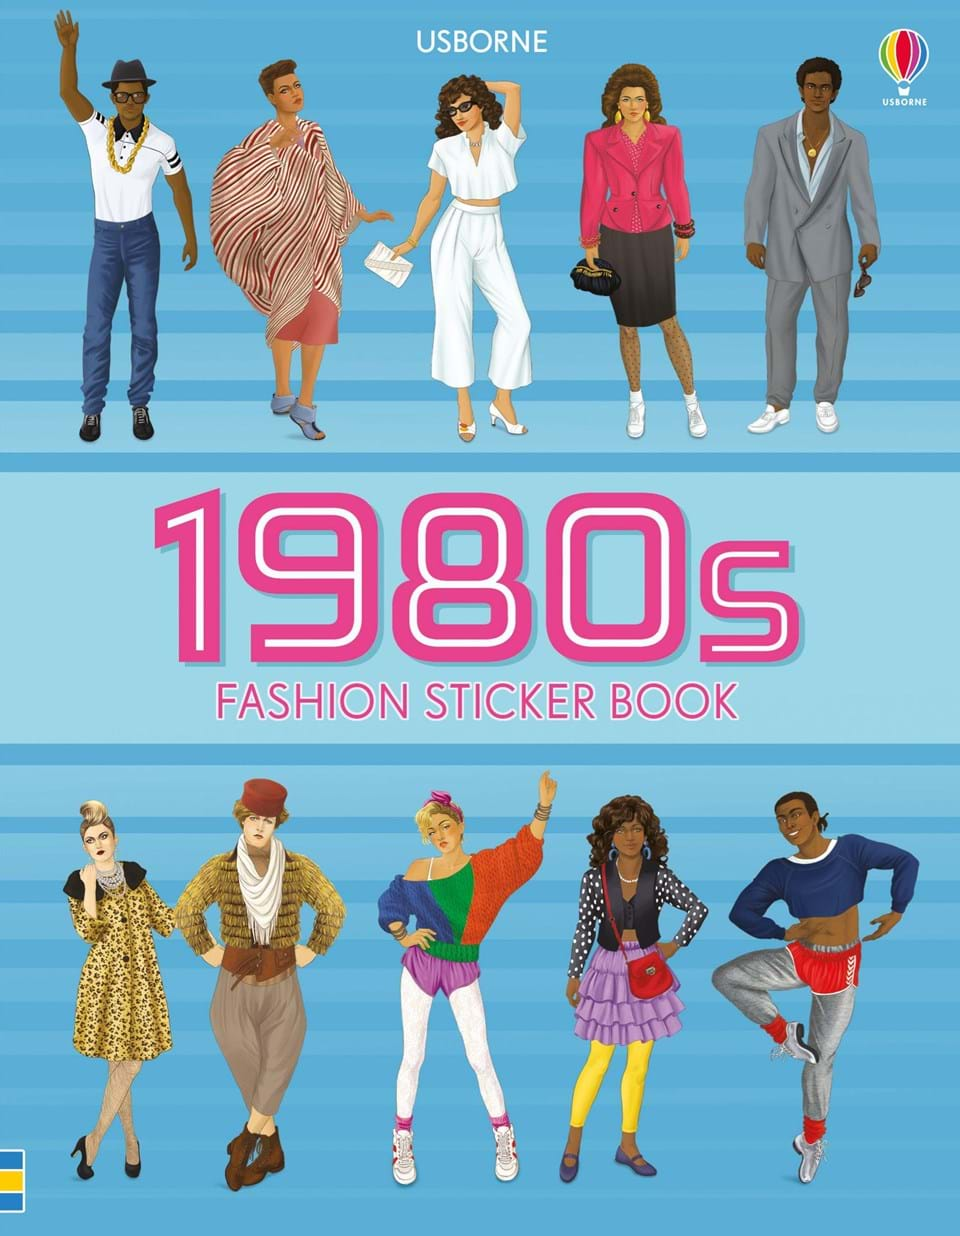 retro, fashion, sticker book, fashio sticker book, shoulder pads, 1980